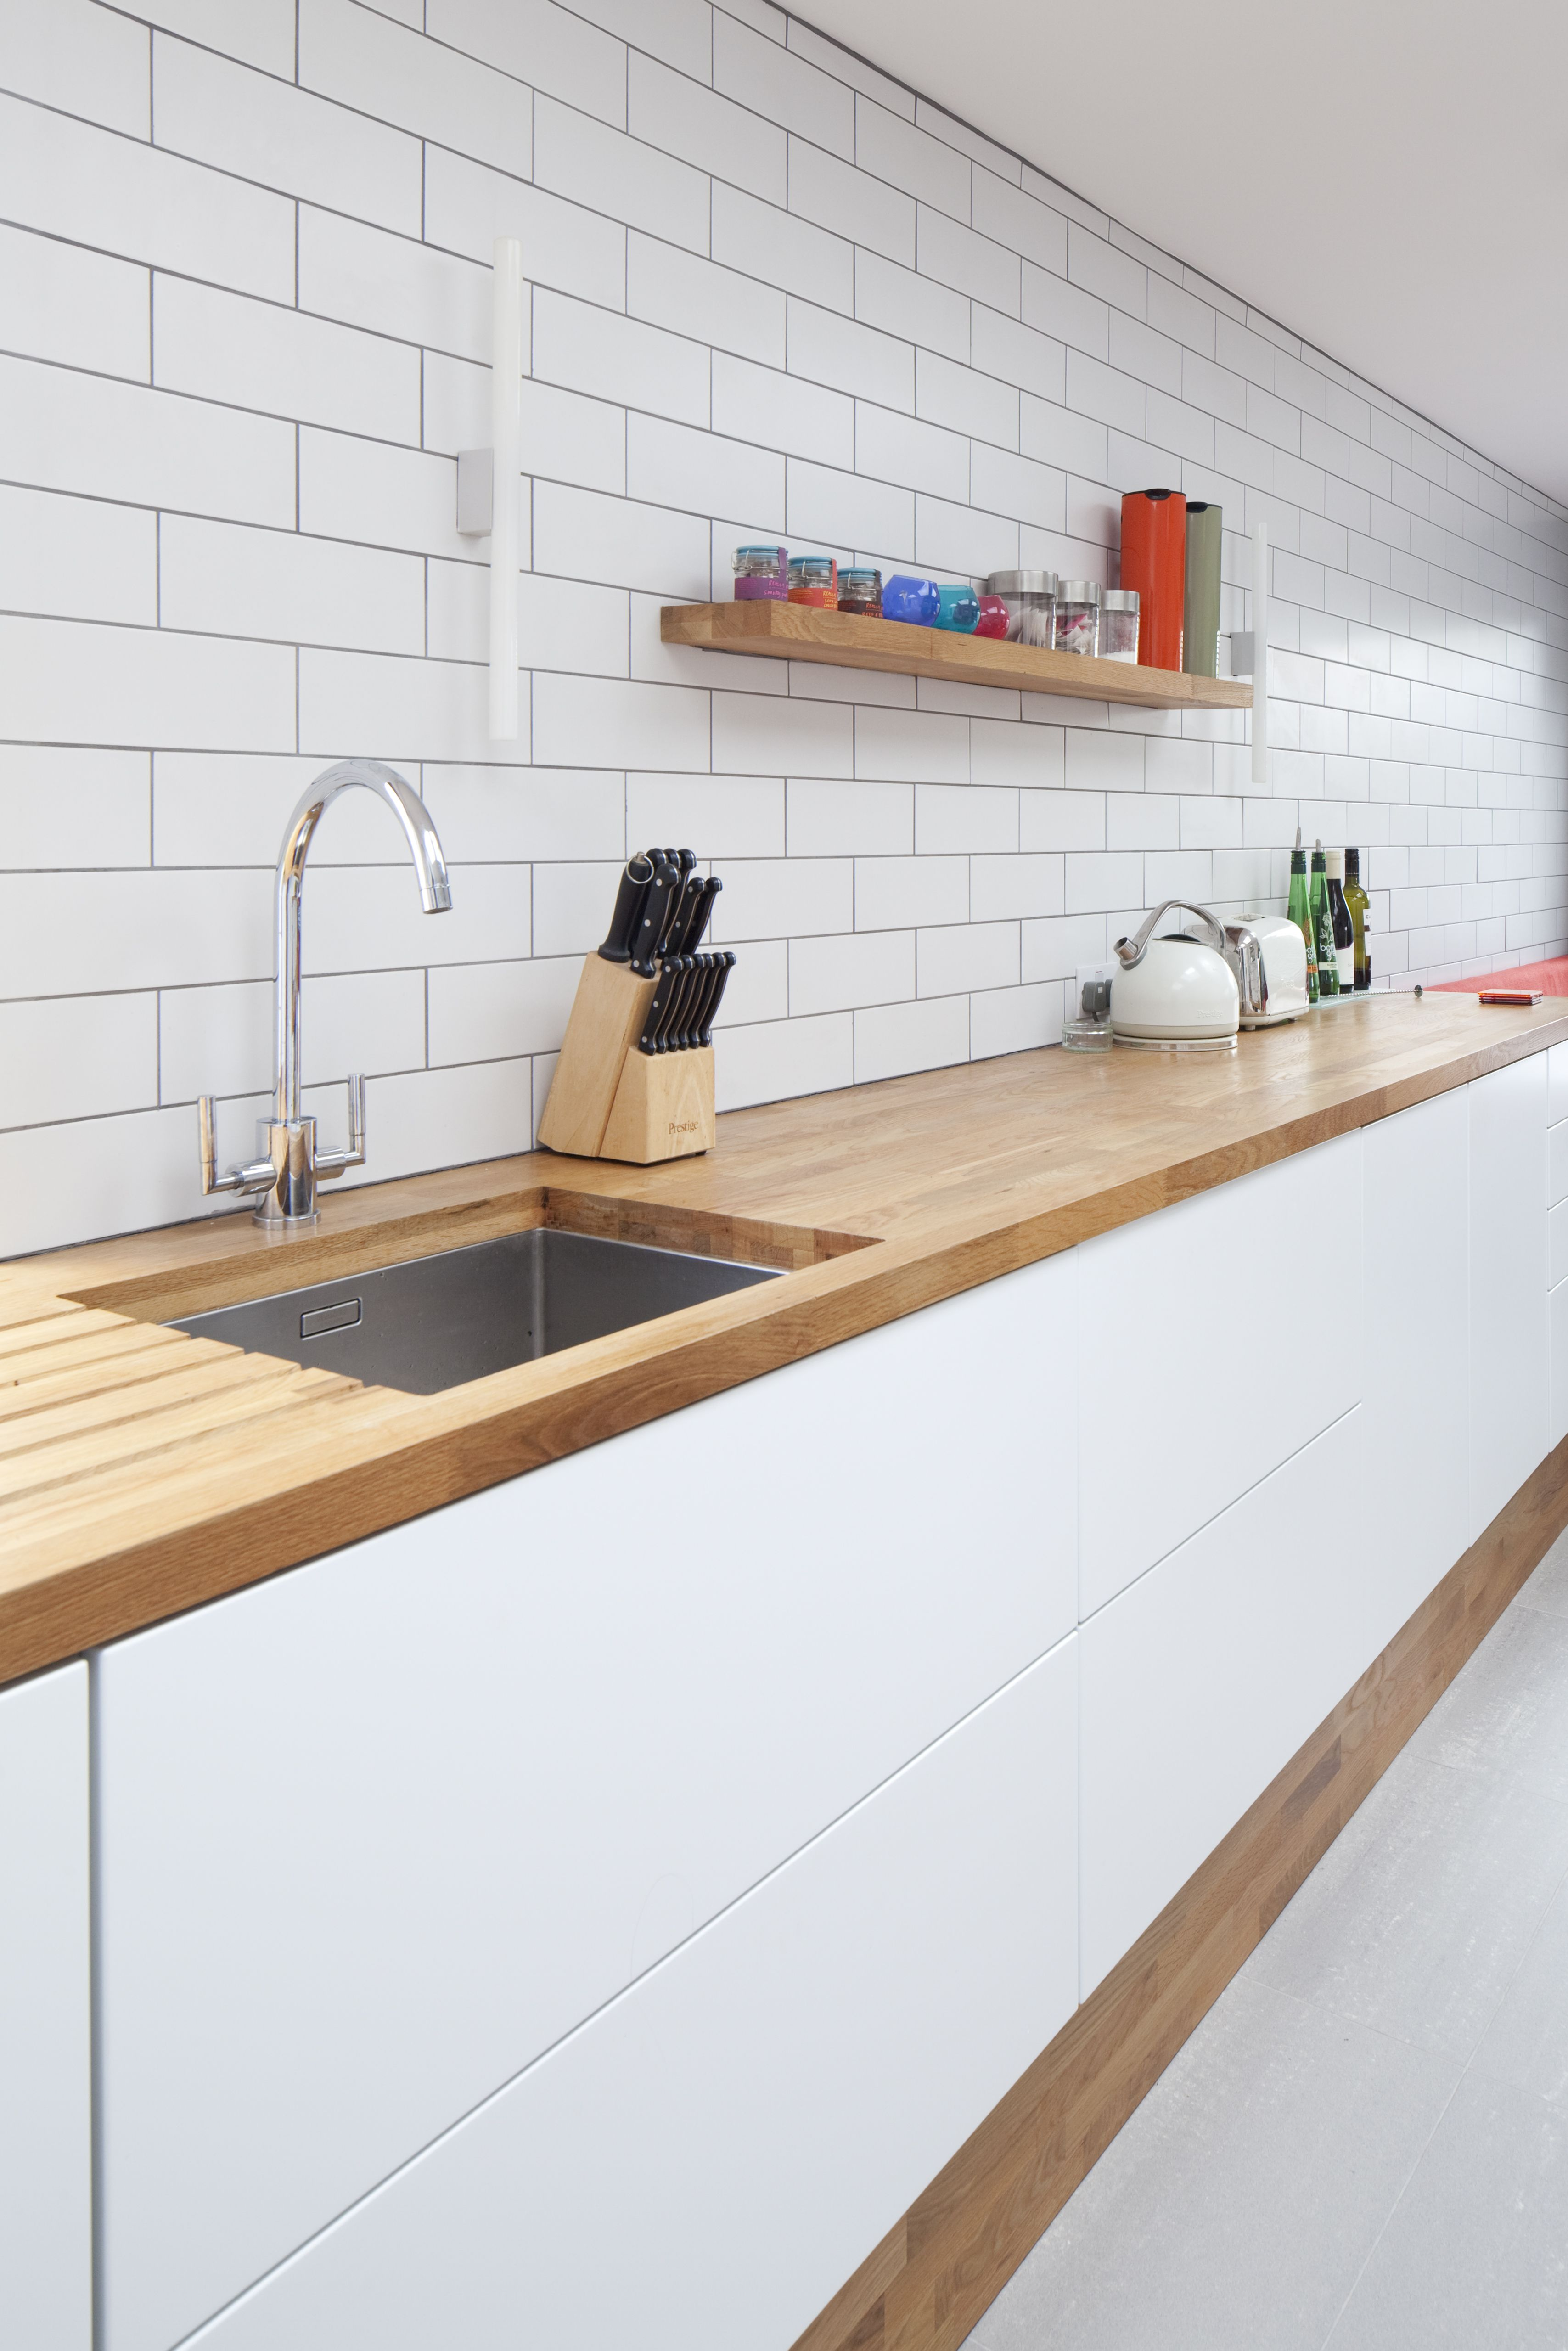 Download Wallpaper White Kitchen With Wood Handles